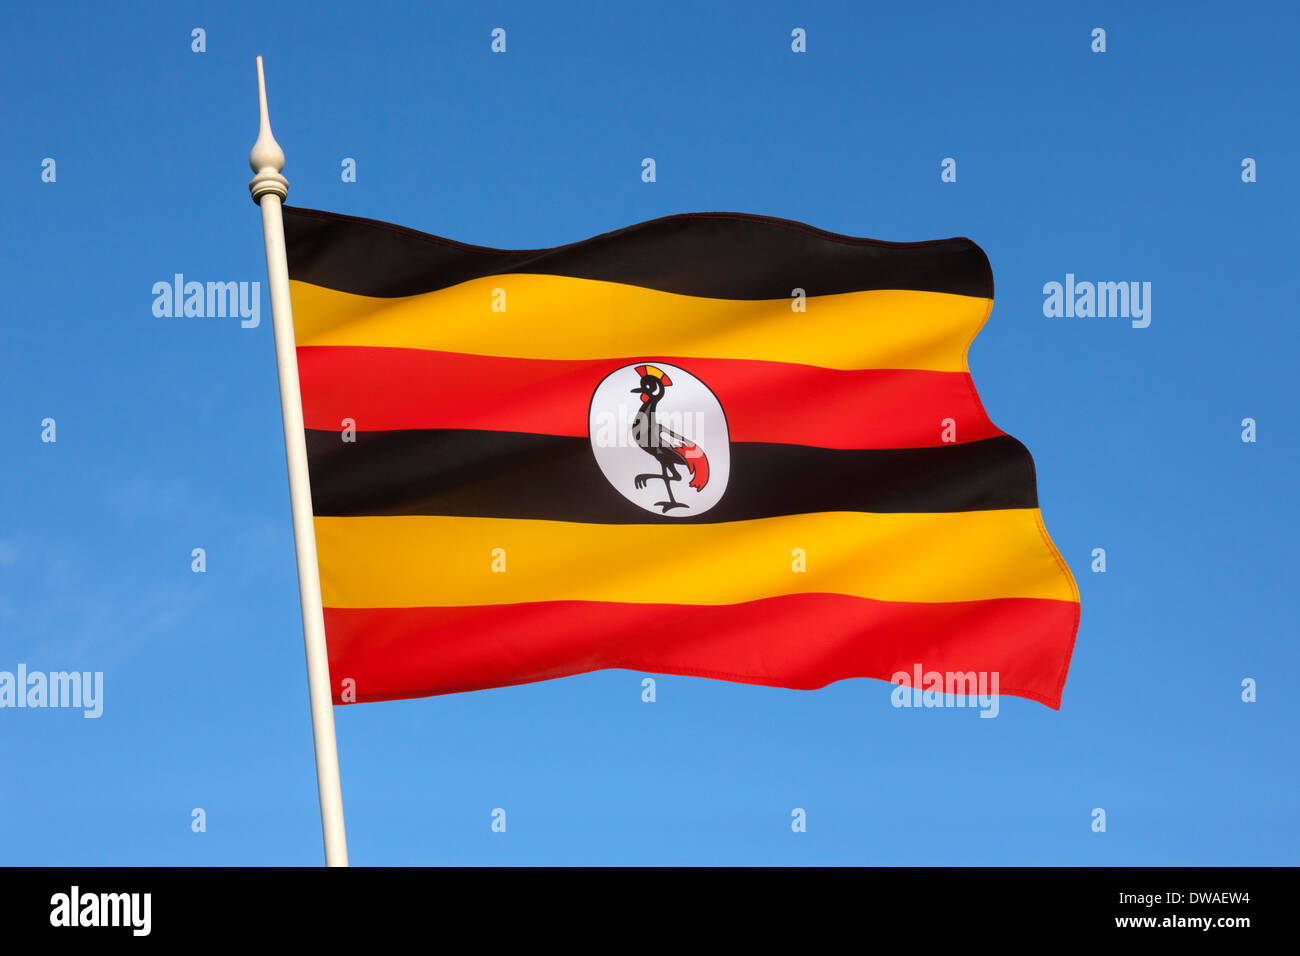 Flag of Uganda - Stock Image